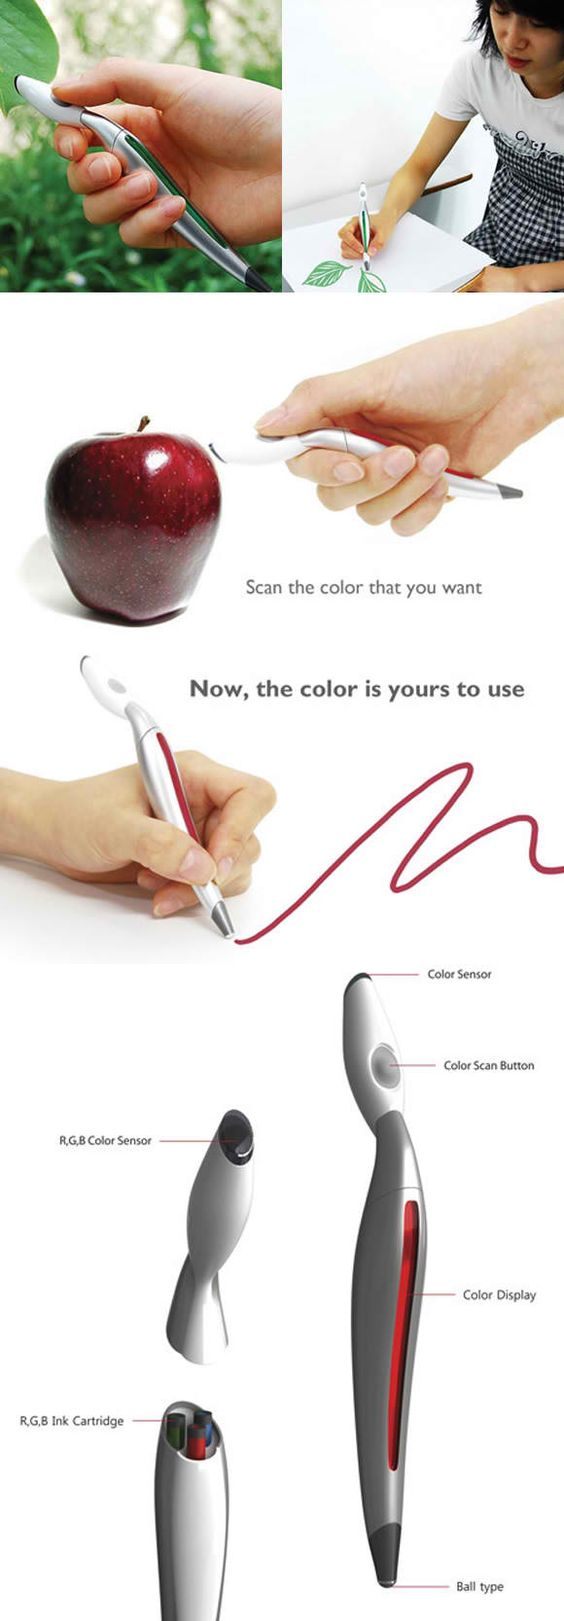 Pen with scanner that creates any color you scan--amazing!